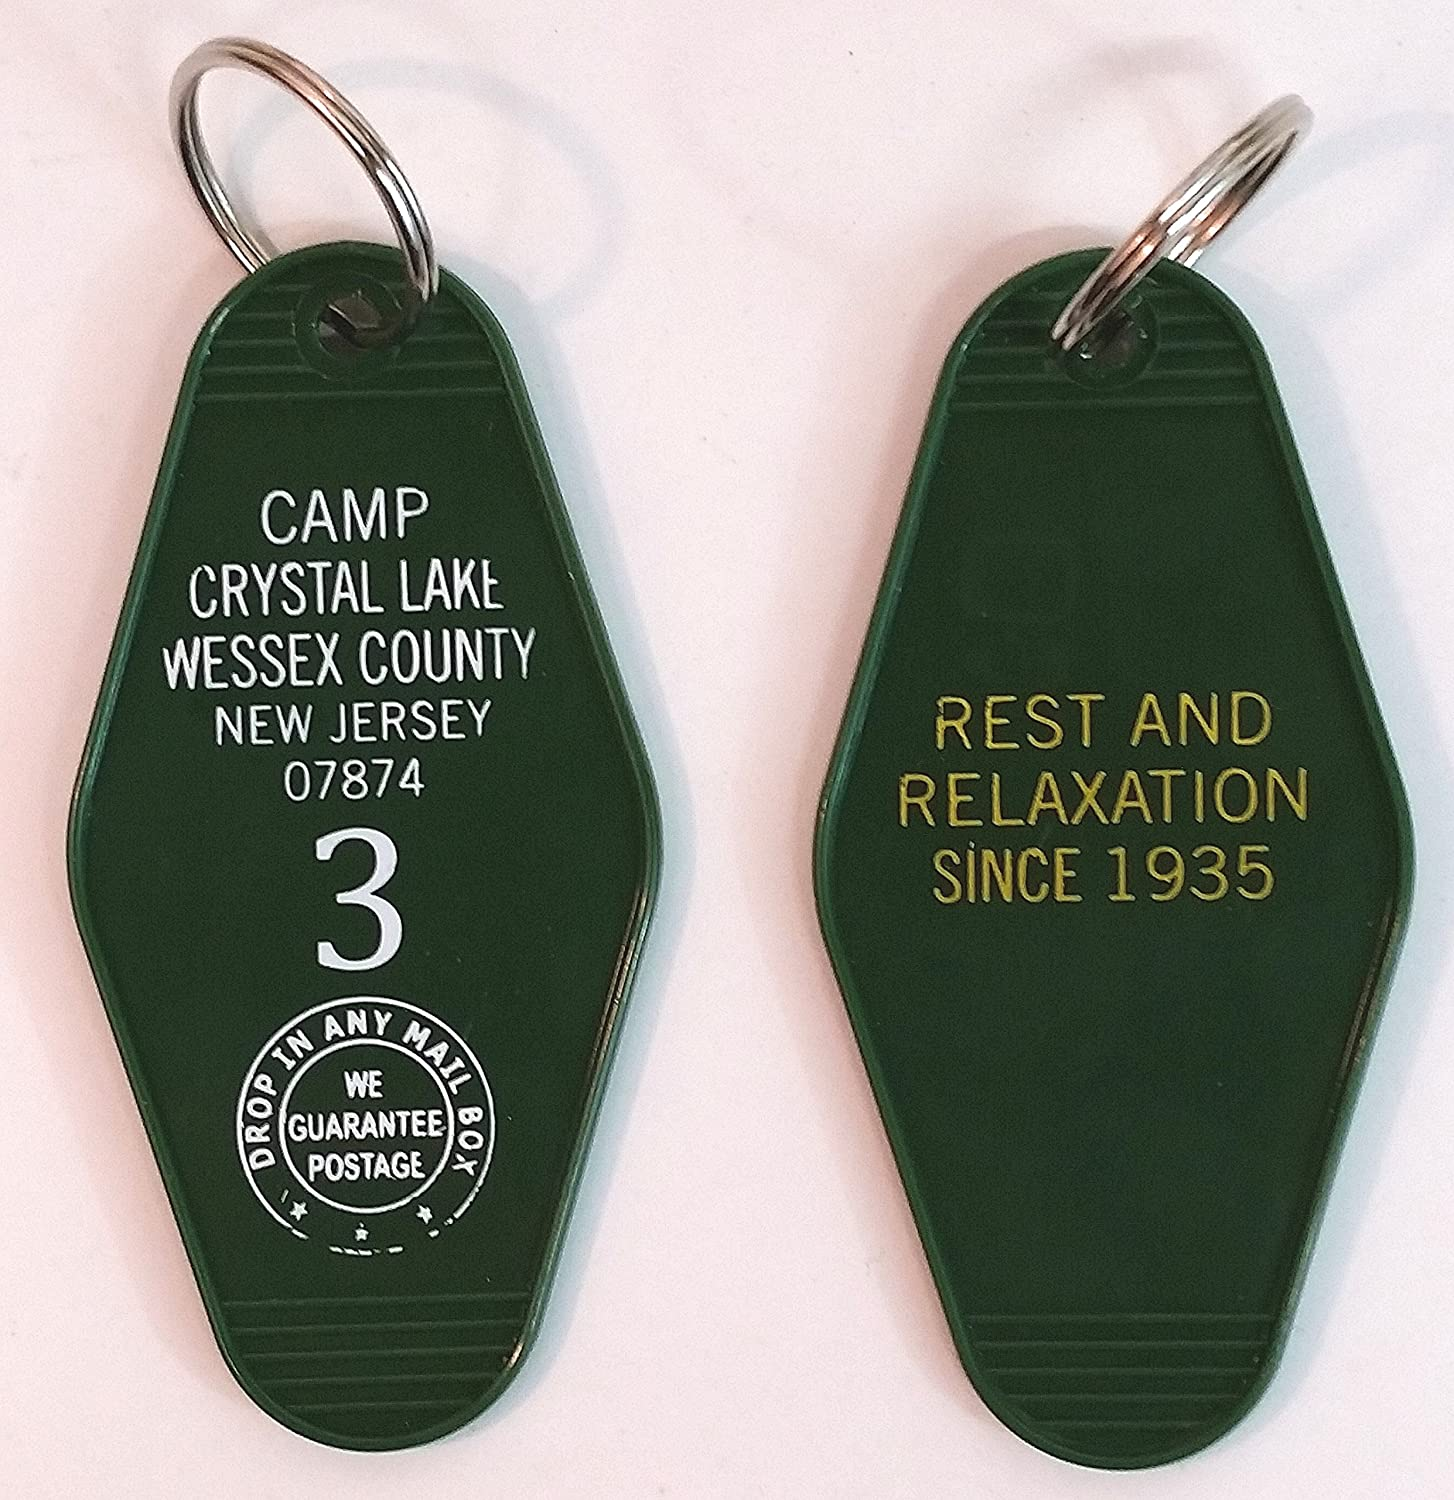 Camp Crystal Lake Wessex County New Jersey Inspired Key Tag Friday the 13th